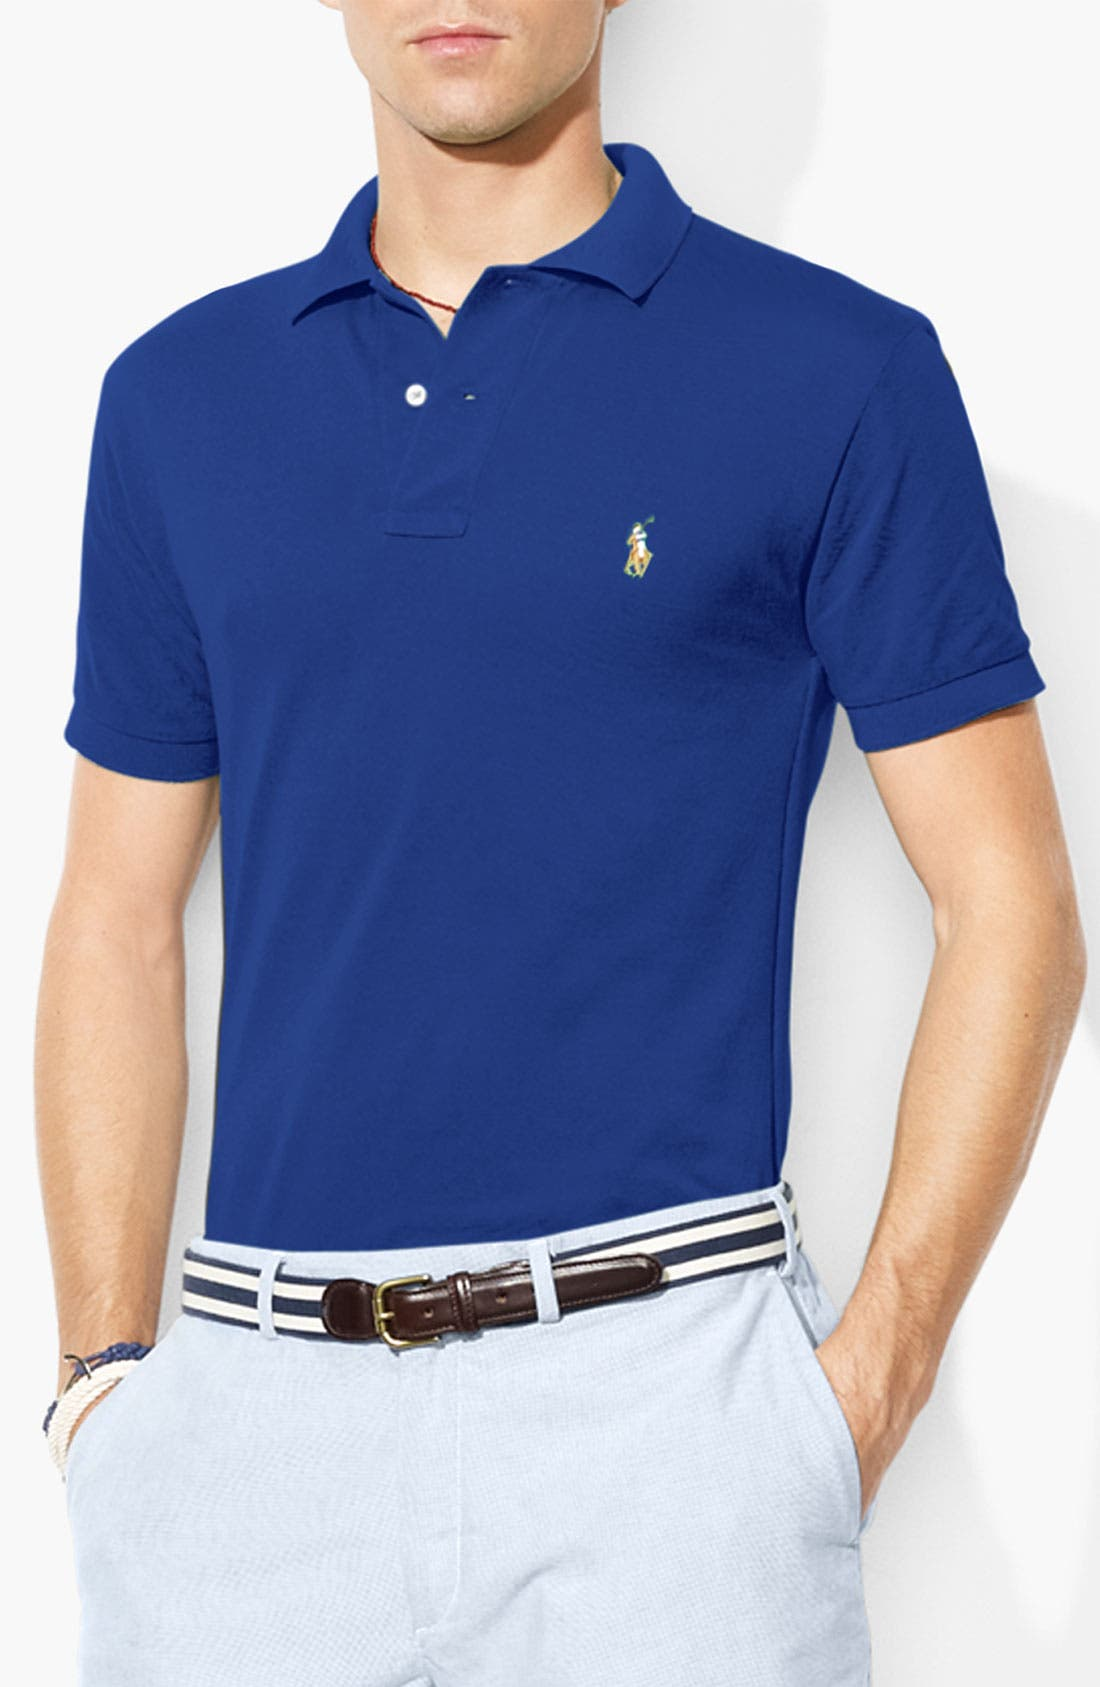 Alternate Image 1 Selected - Polo Ralph Lauren Mesh Knit Classic Fit Polo